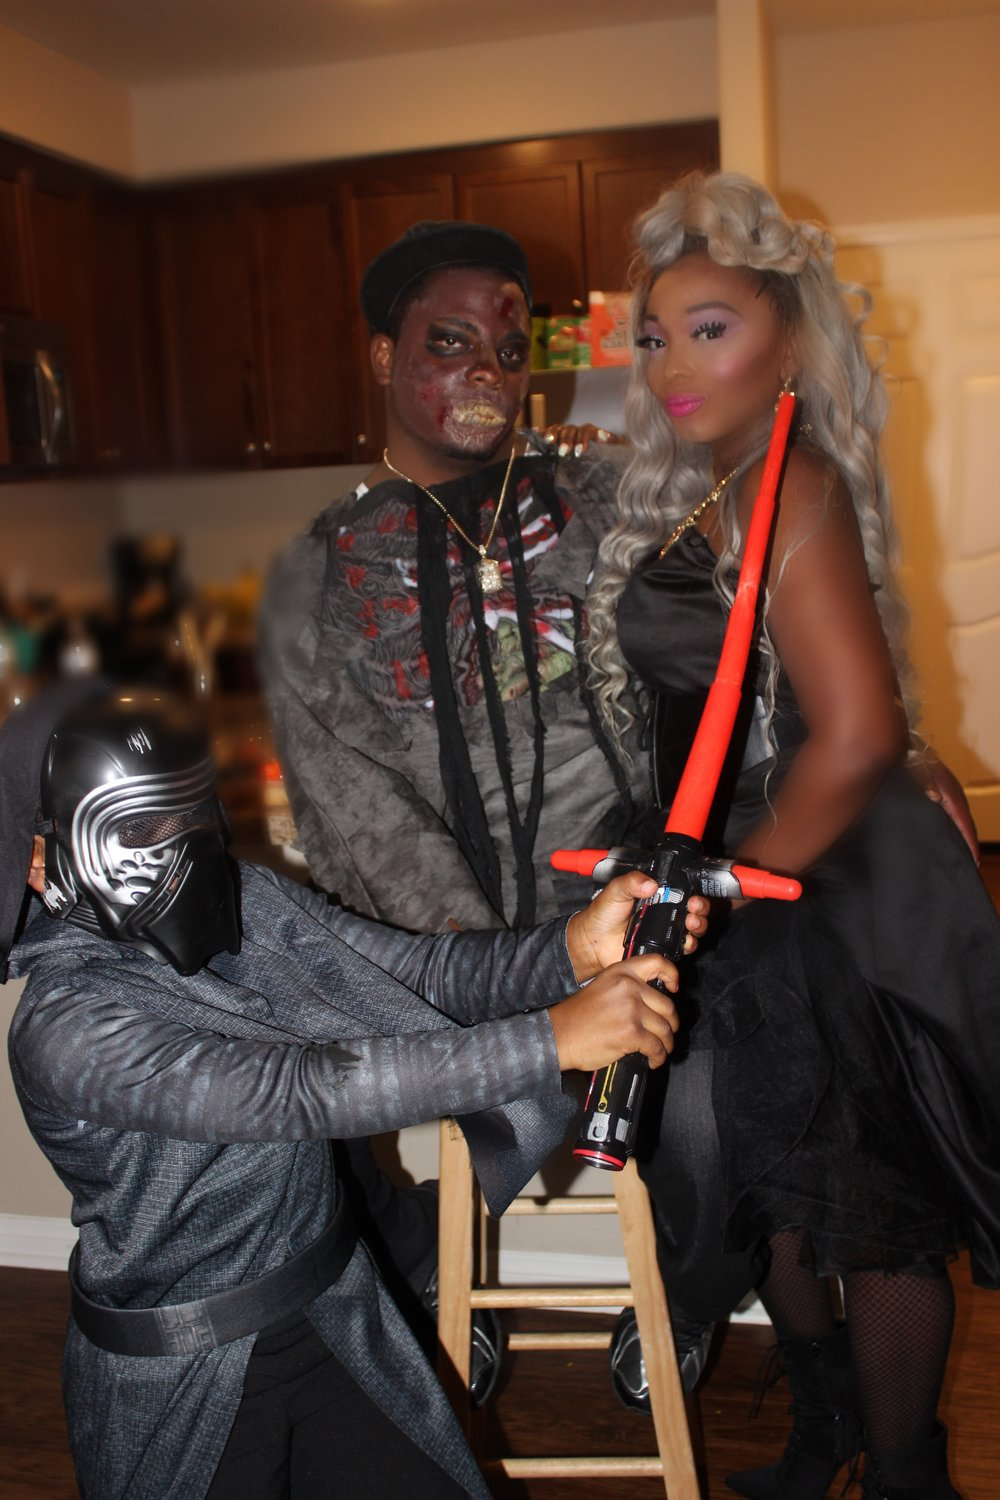 Check out my DIY Inspired Halloween Costume right in th Fashion tab above. -